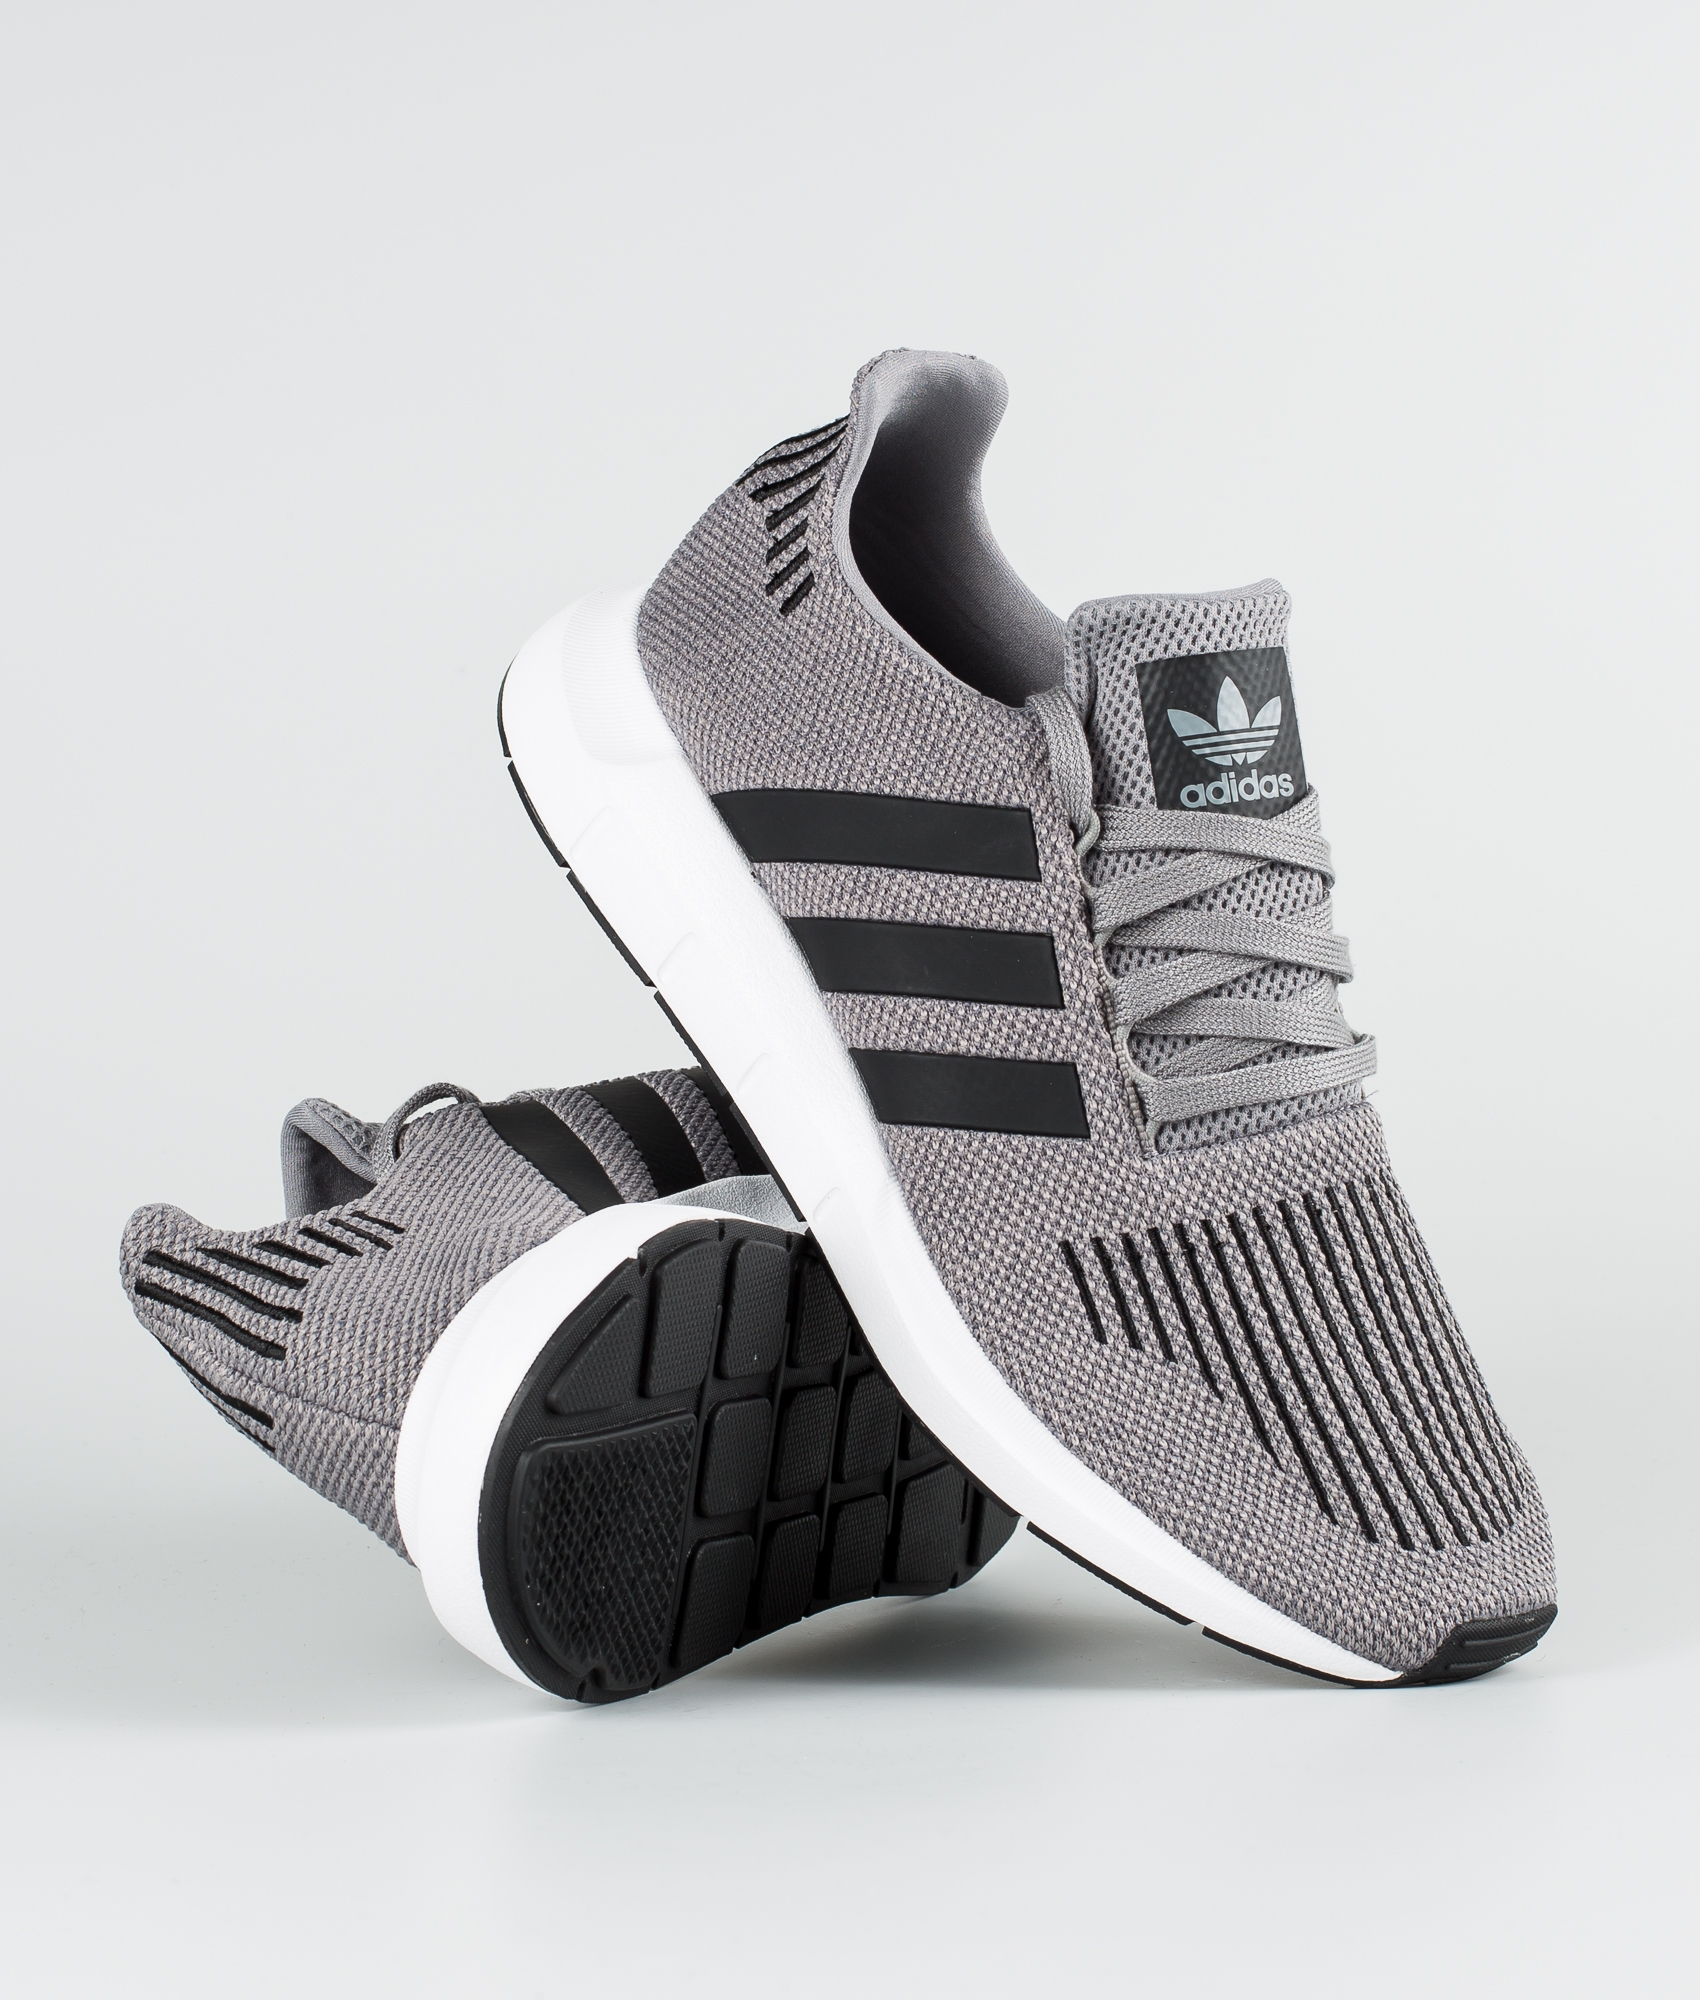 Run Adidas Heathercore Swift Blackmedium Schuhe Grey Originals Heather hxtsdBrQC